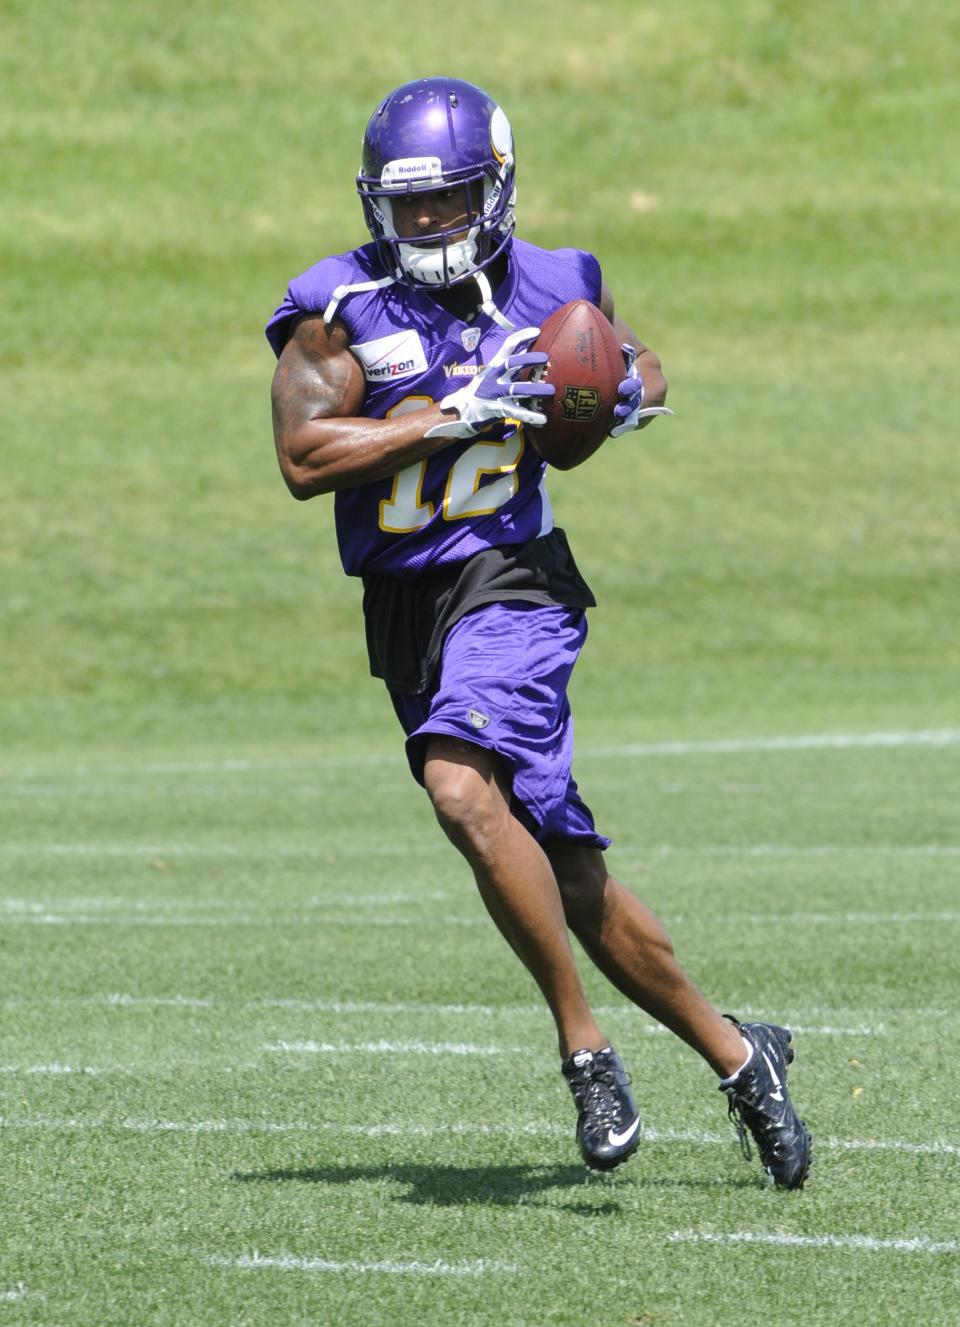 Minnesota Vikings wide receiver Percy Harvin carries the ball during NFL football practice, Thursday, June 21, 2012, in Eden Prairie, Minn. Harvin has asked to be traded, saying earlier in the week he was upset with the team but not elaborating. (AP Photo/Jim Mone)